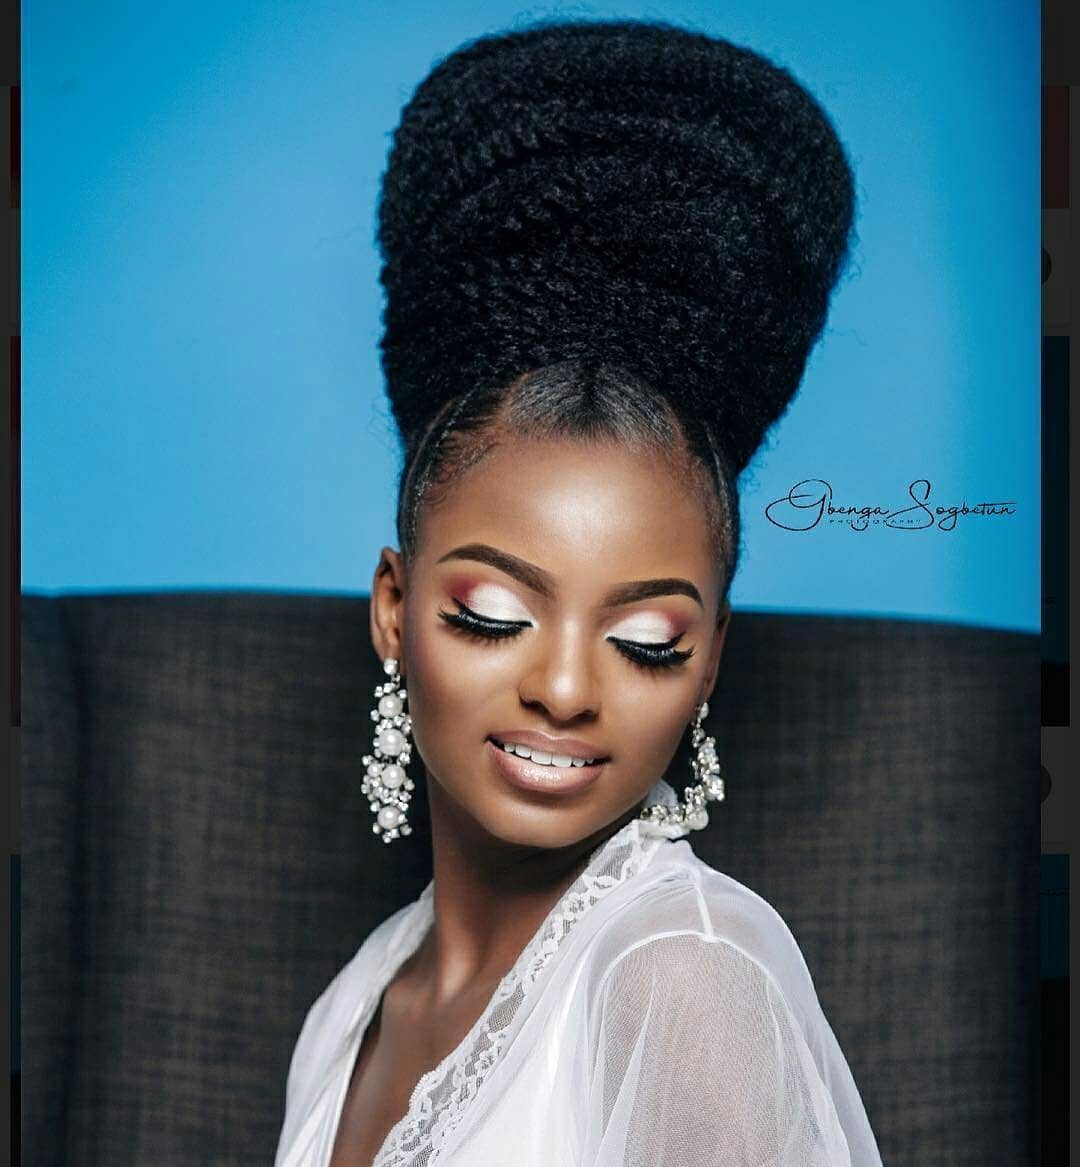 Tips For Hair Style For Wedding: This Beauty Look With A Big Bun Is Just Right For A